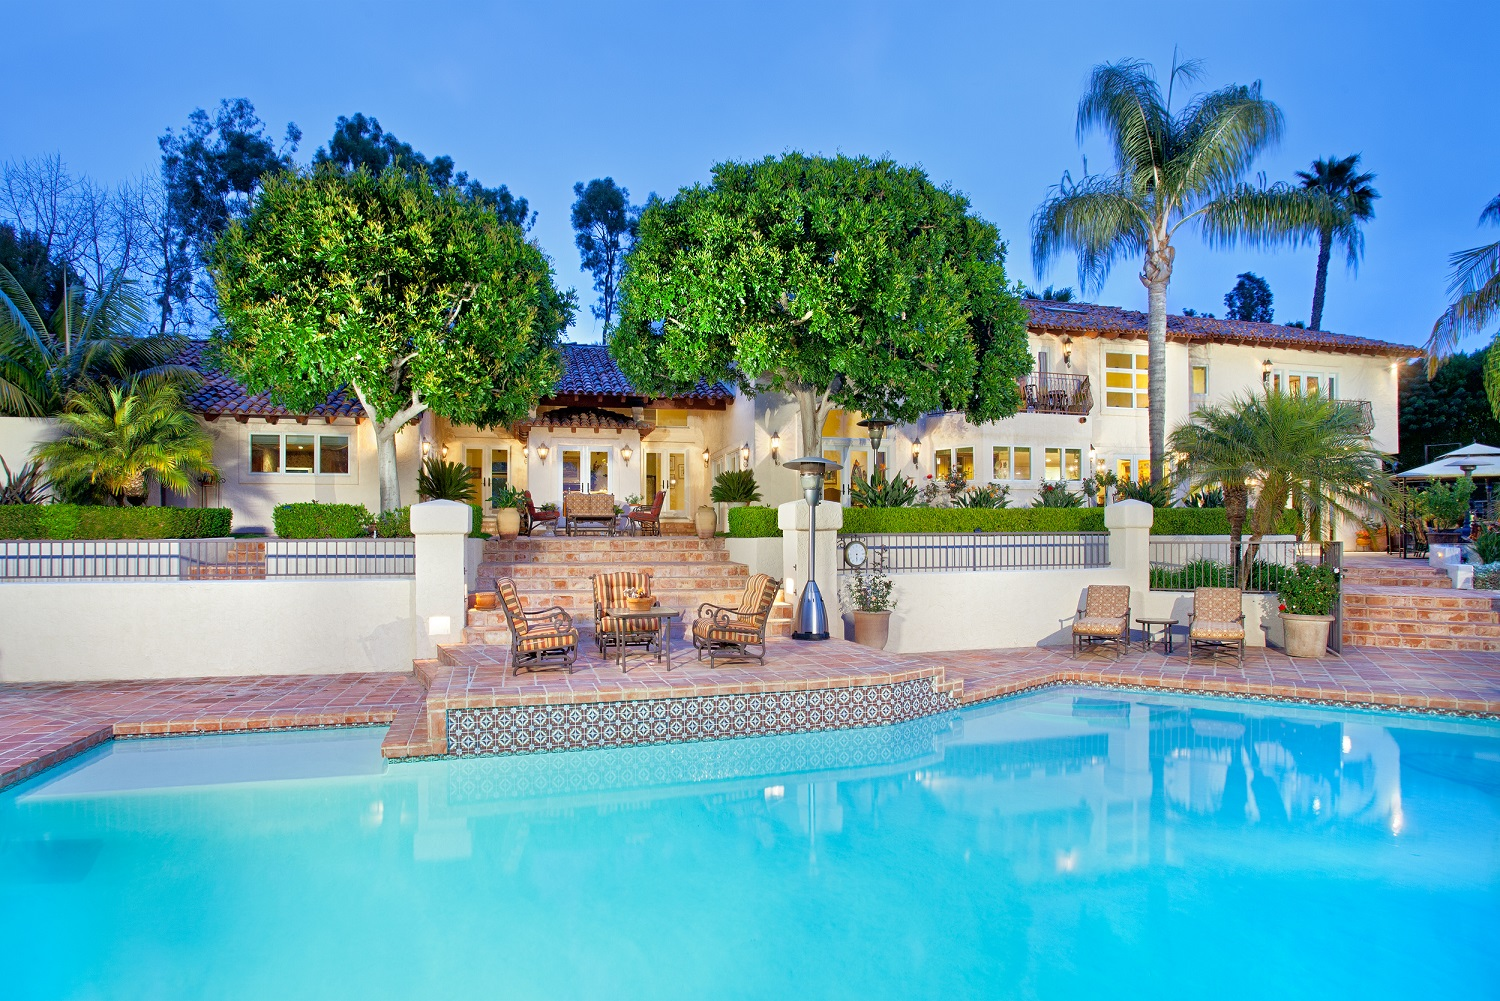 Sold 2014 Represented Buyer -  Rancho Santa Fe, CA 92067